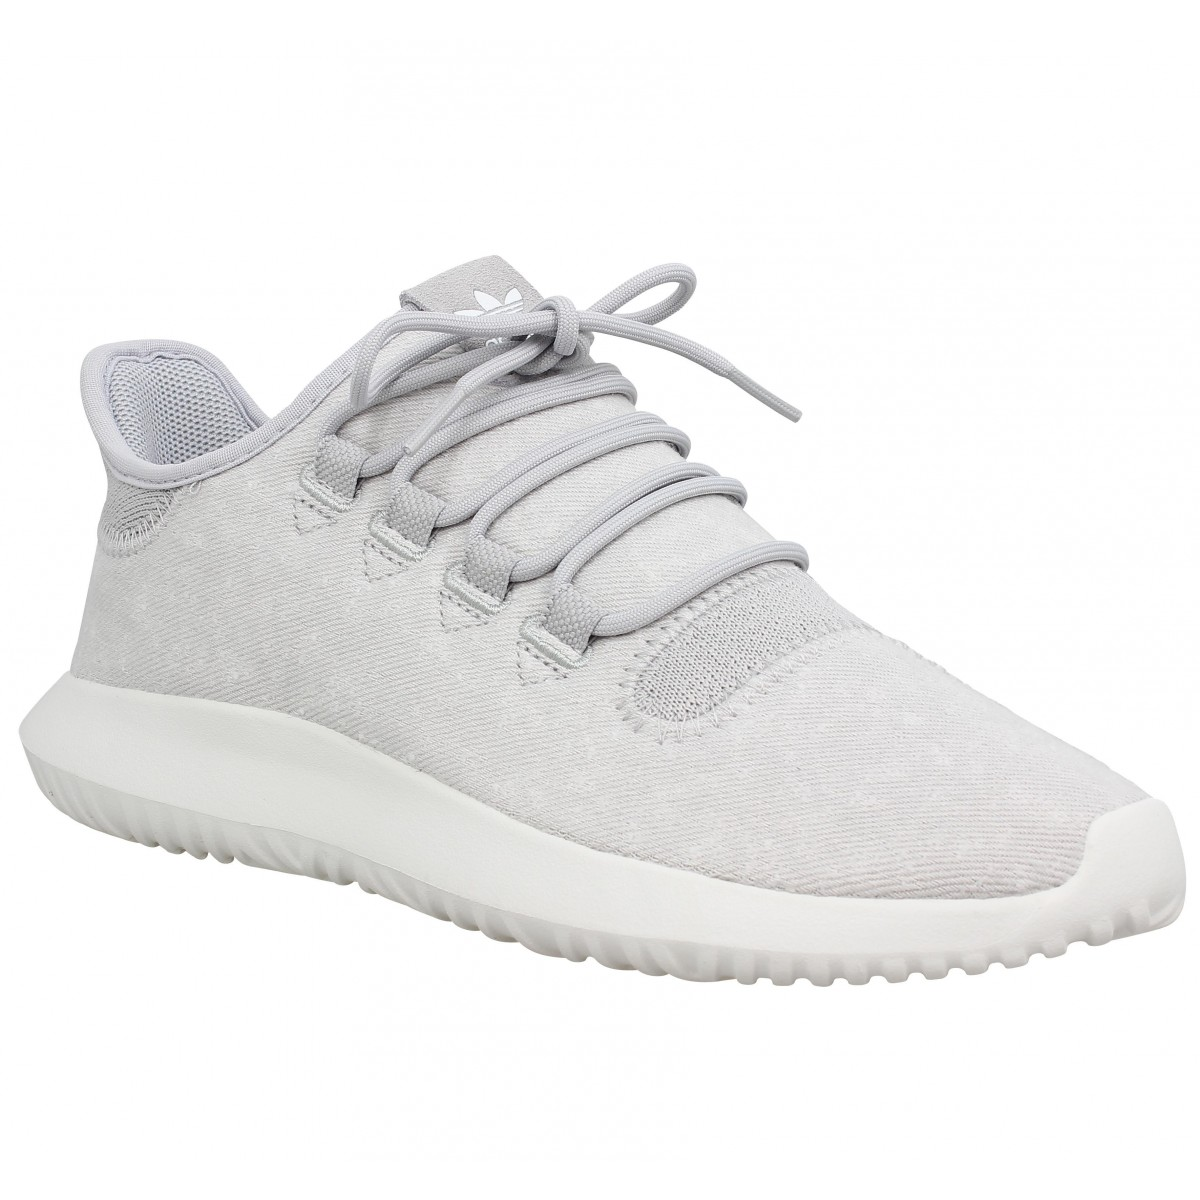 Chaussure Adidas Homme Homme Homme Adidas Tissu Tissu Adidas Chaussure Chaussure Tissu Adidas f7YgvbmI6y